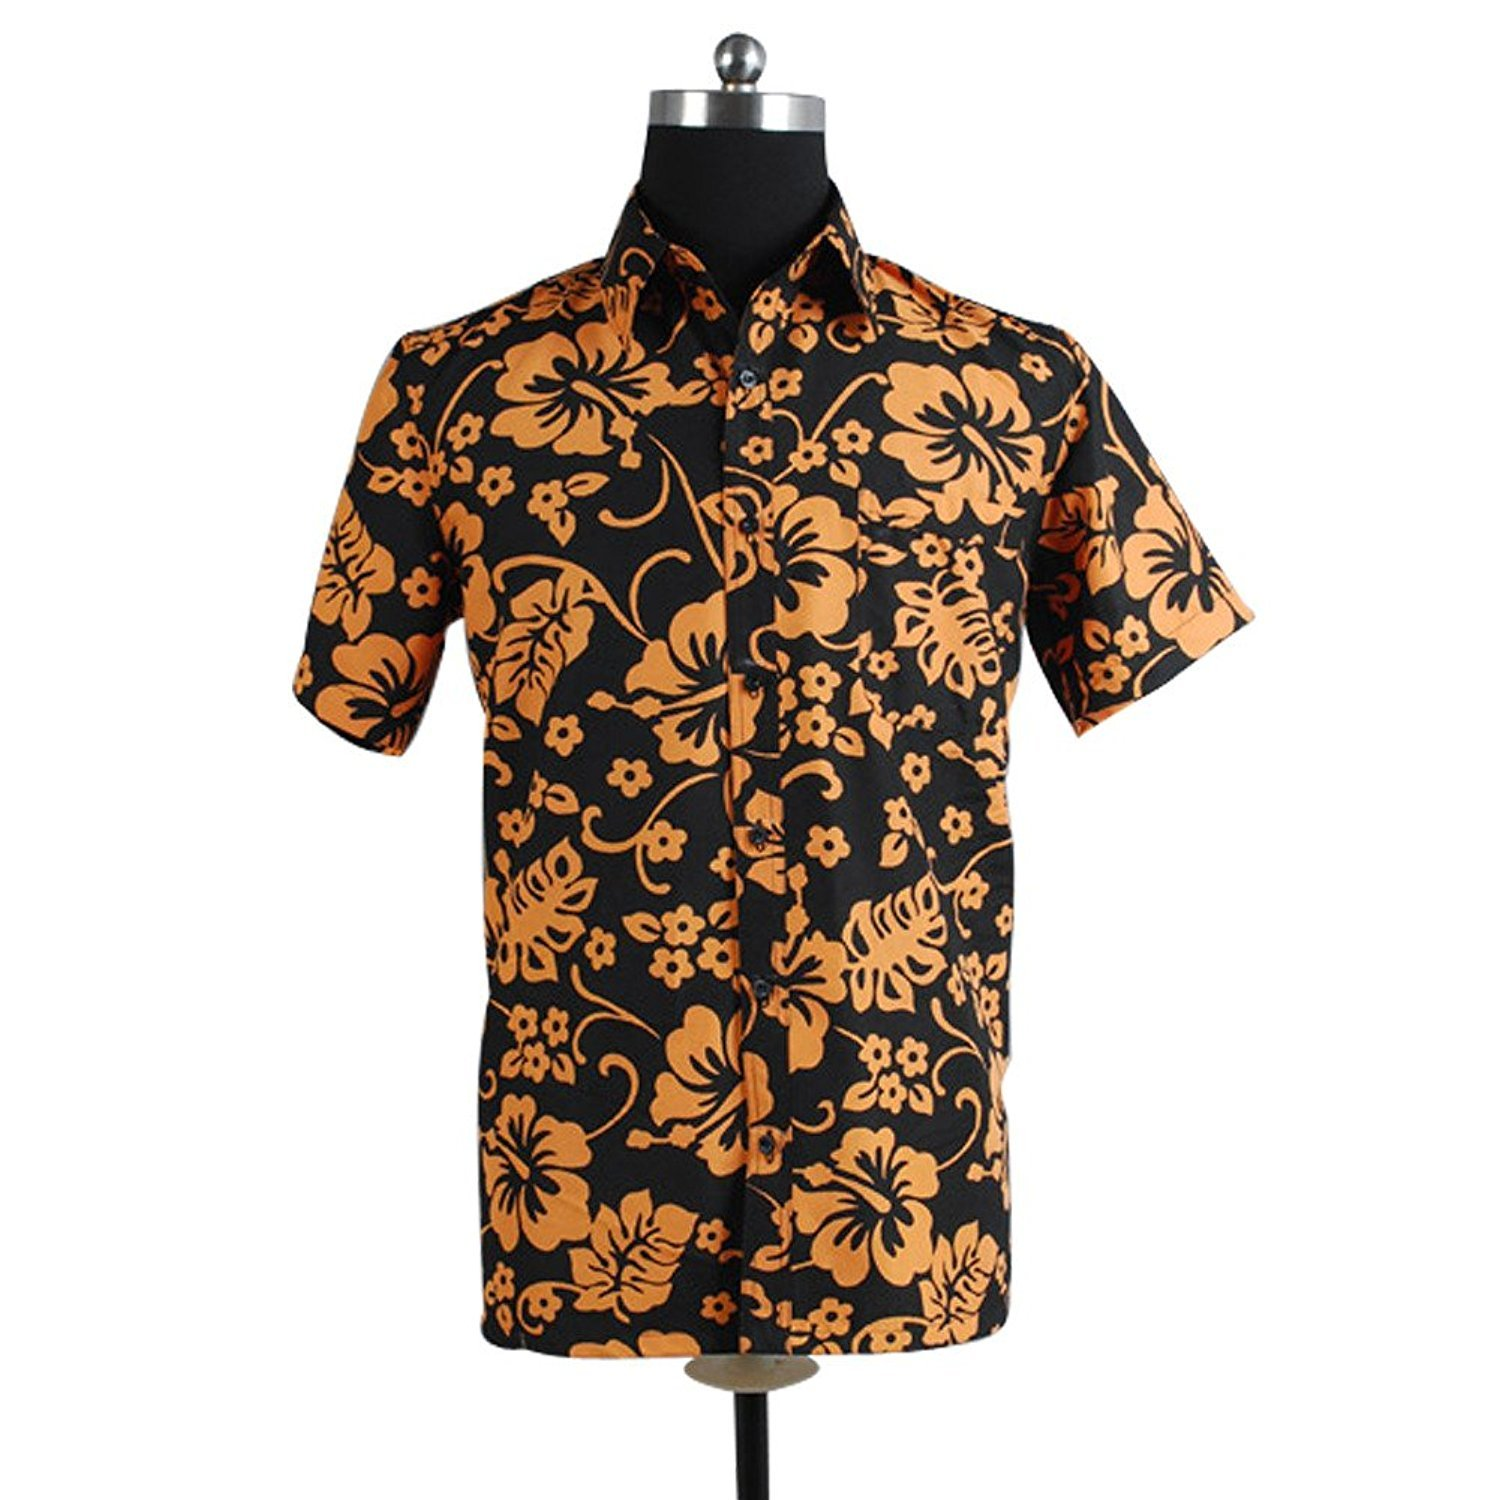 Primary image for Cosplay Fear and Loathing in Las Vegas Costume Raoul Duke Shirt